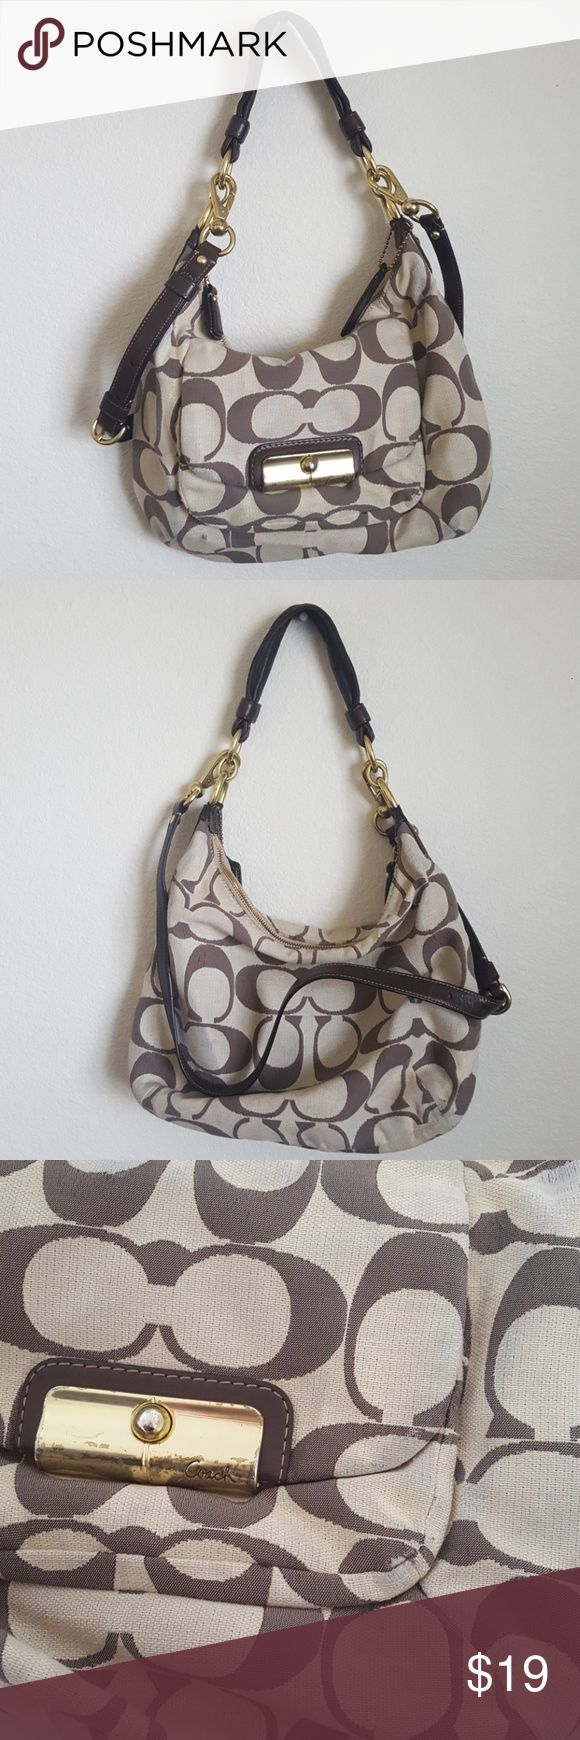 """Brown and taupe coach hobo bag Brown and taupe coach medium hobo bag. Has some discoloration and signs of wear, but has a lot of life left. I never use it anymore, so it needs to go to a good home. Comes with adjustable/removable crossbody leather strap. With gold accents.  14"""" width  10"""" depth 11"""" handle 30"""" crossbody strap Coach Bags Hobos"""